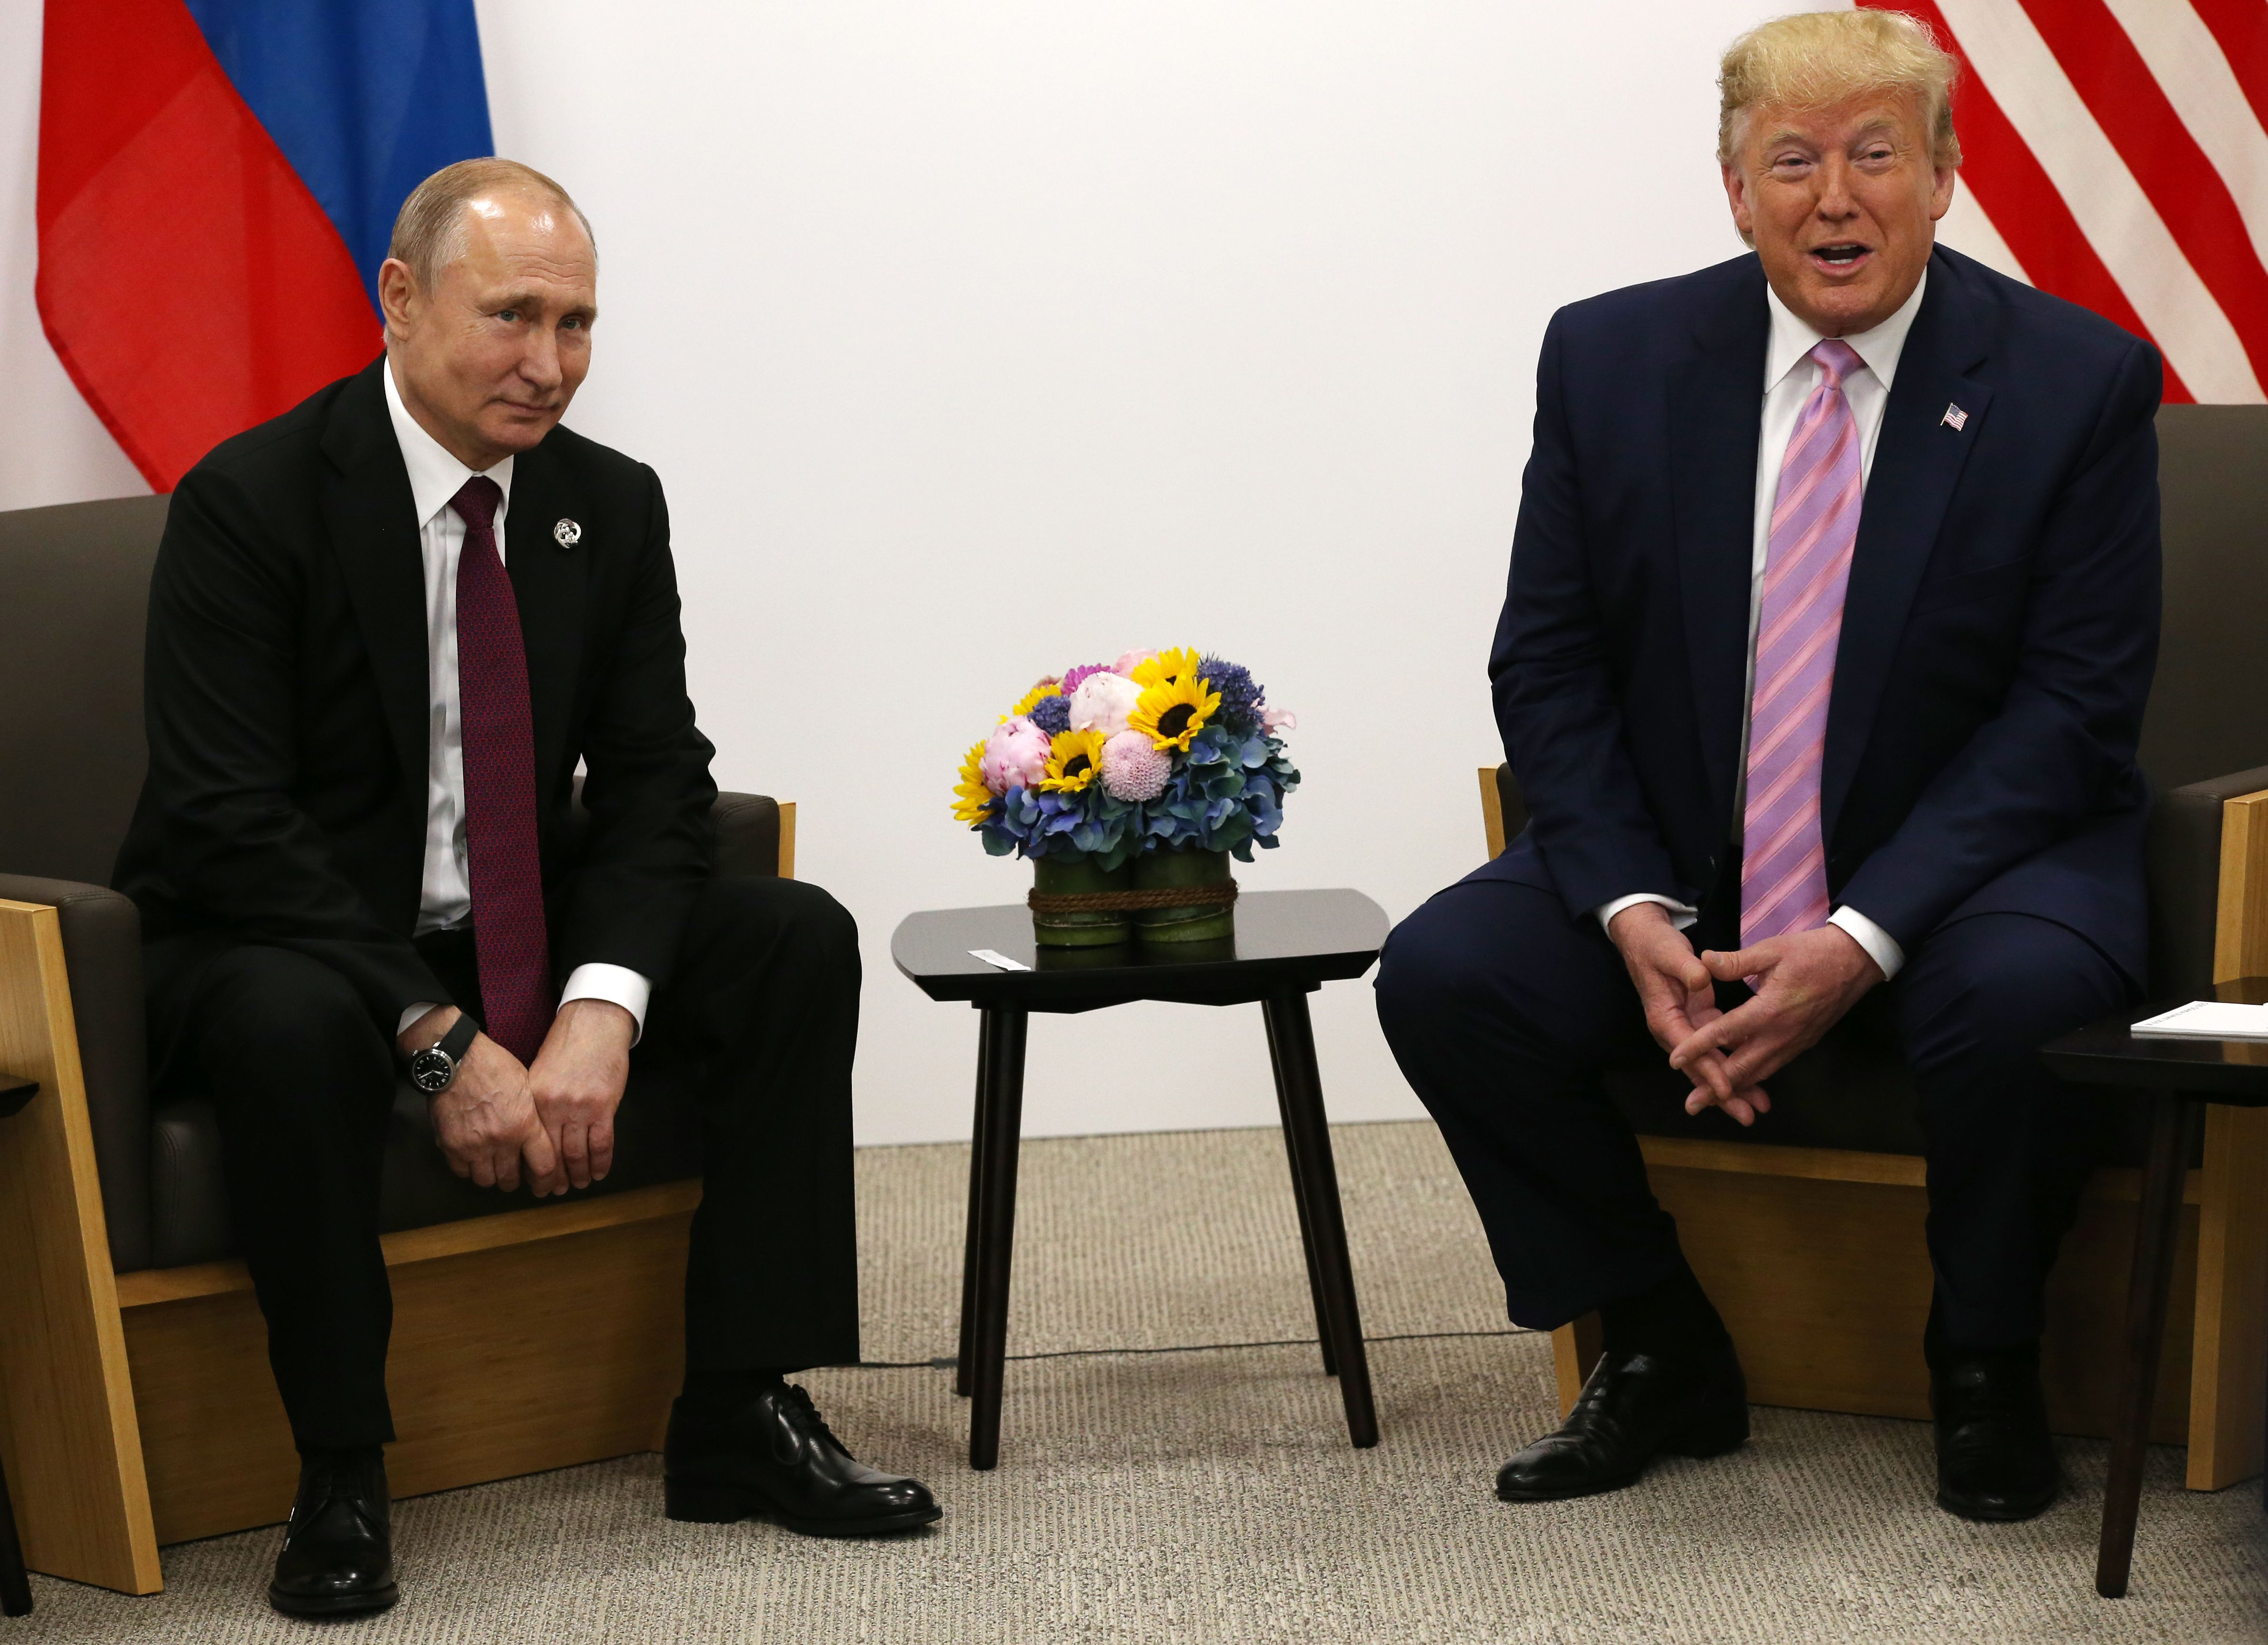 """Report: U.S. is underestimating Putin's """"grand strategy"""" for Russian dominance - Axios"""